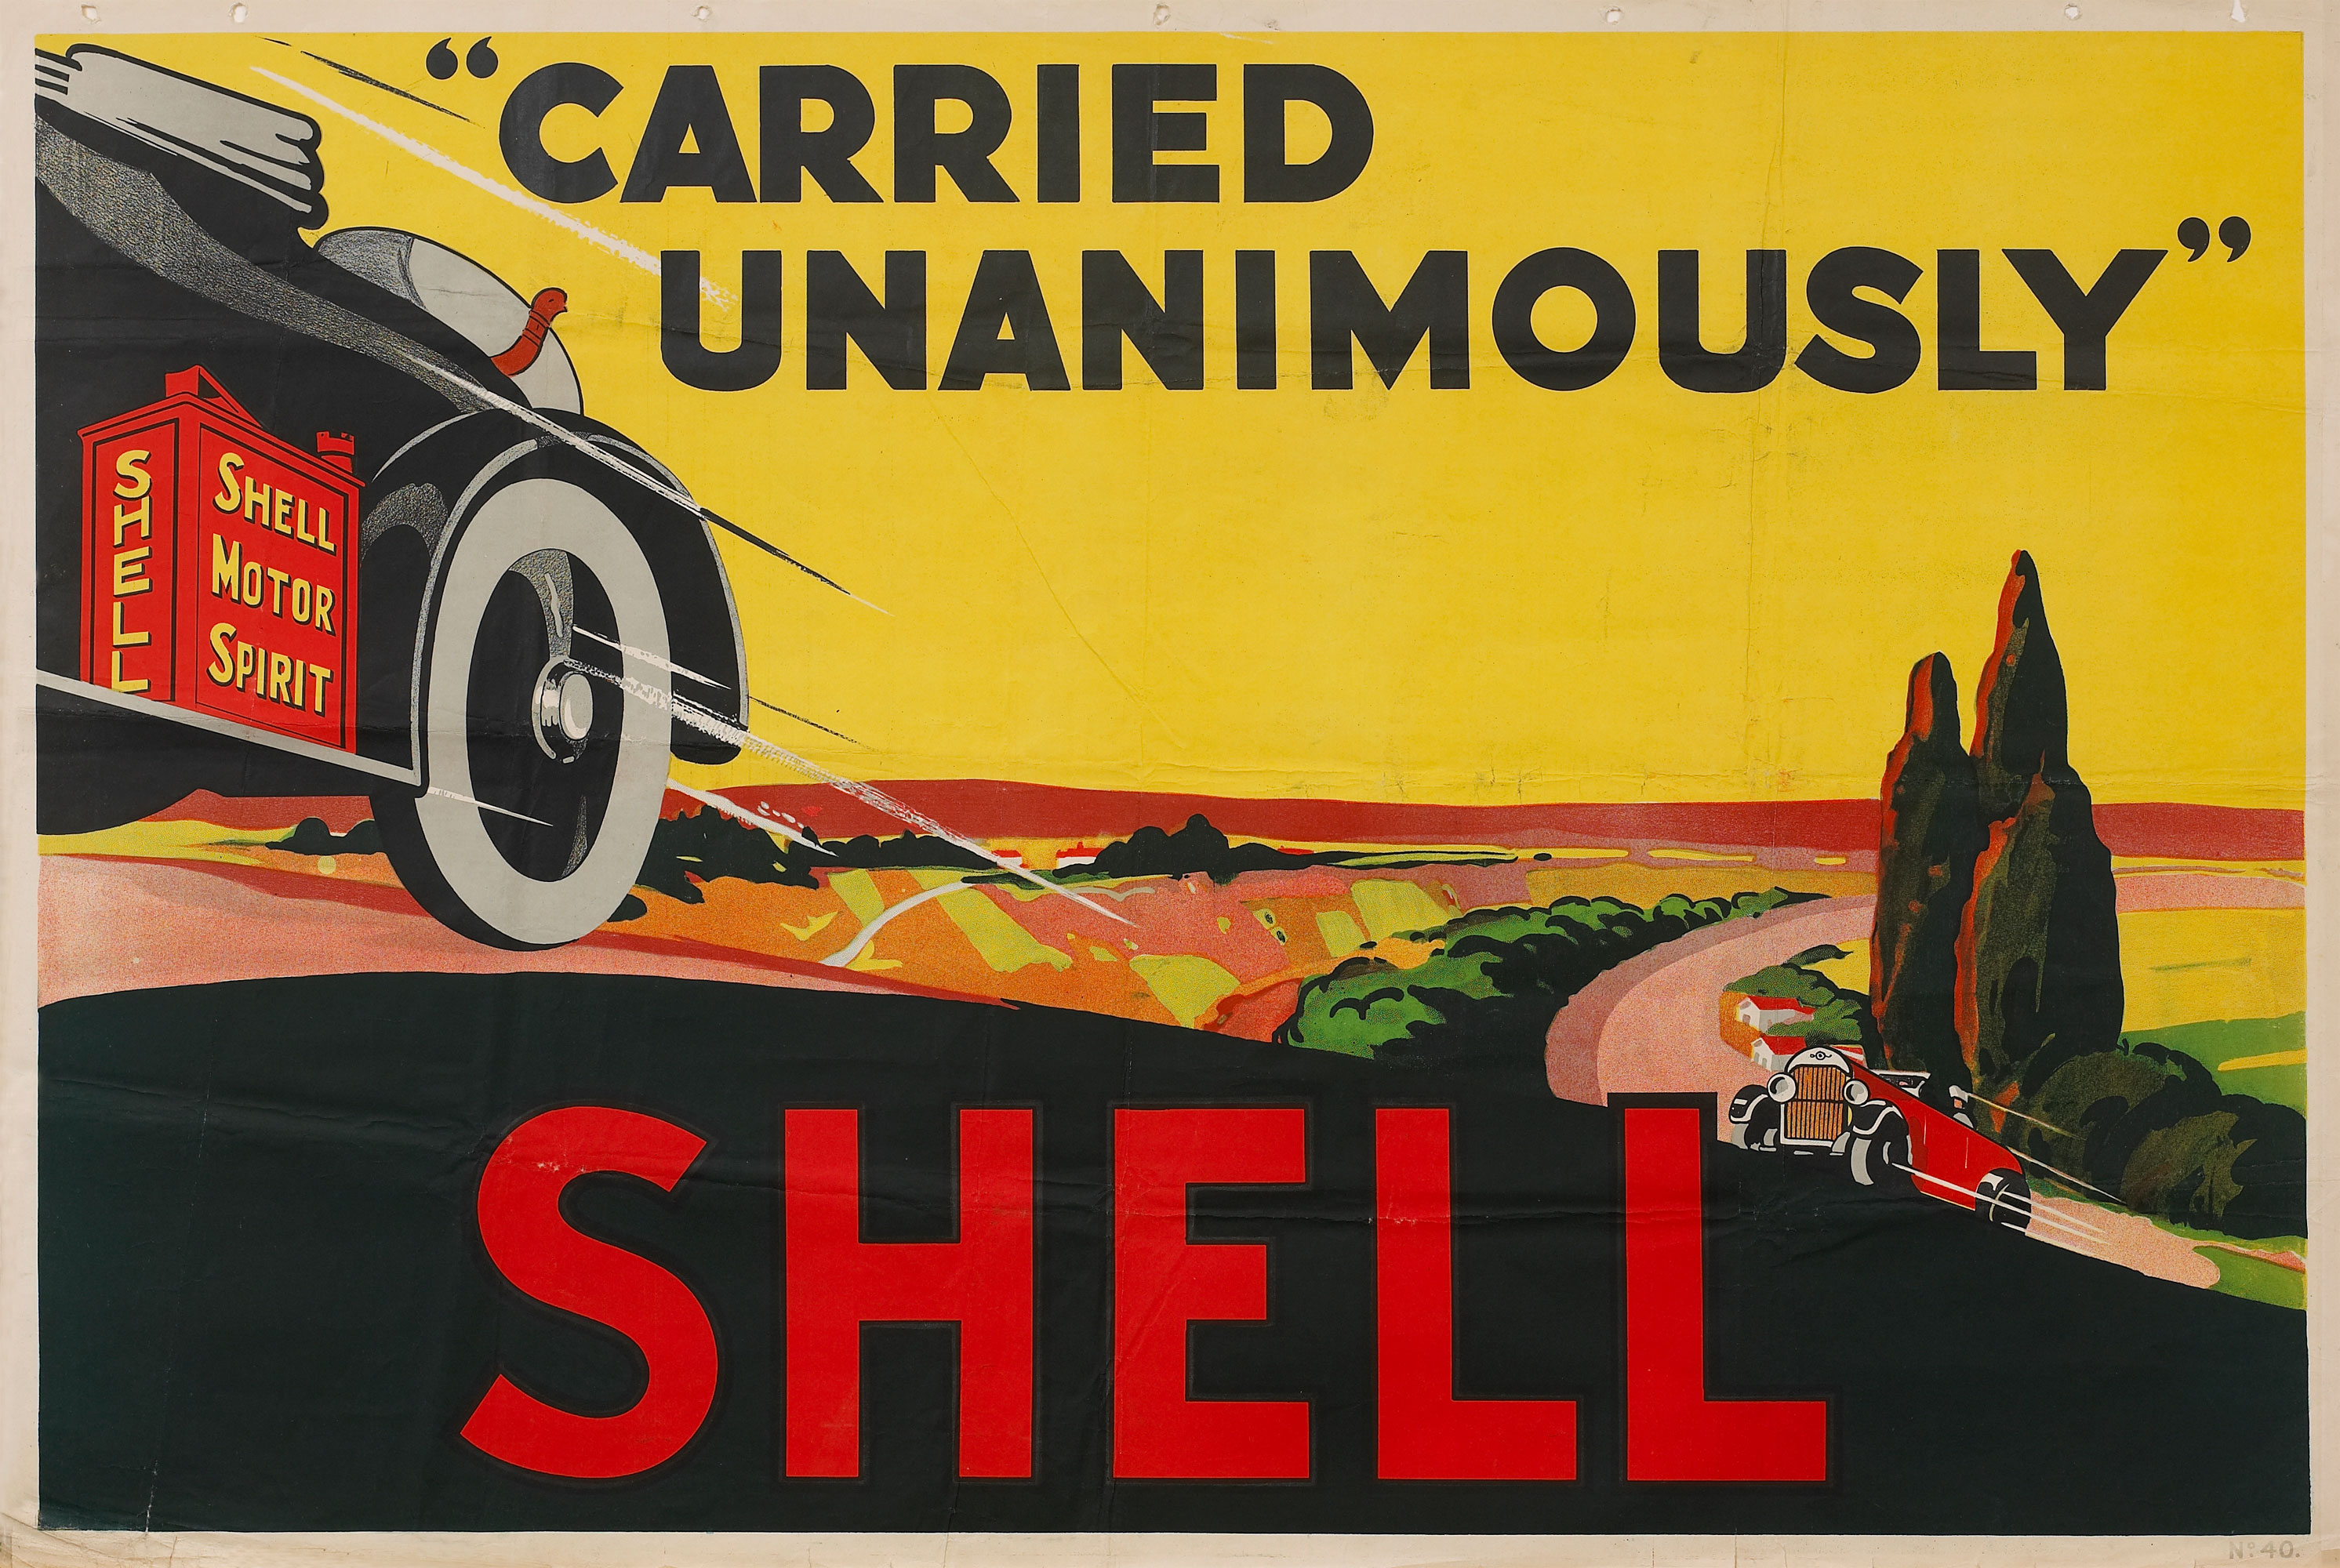 Shell poster number 40, Carried Unanimously (1923) by Shell Studio. Poster shows speeding cars carrying cans of Shell petrol.